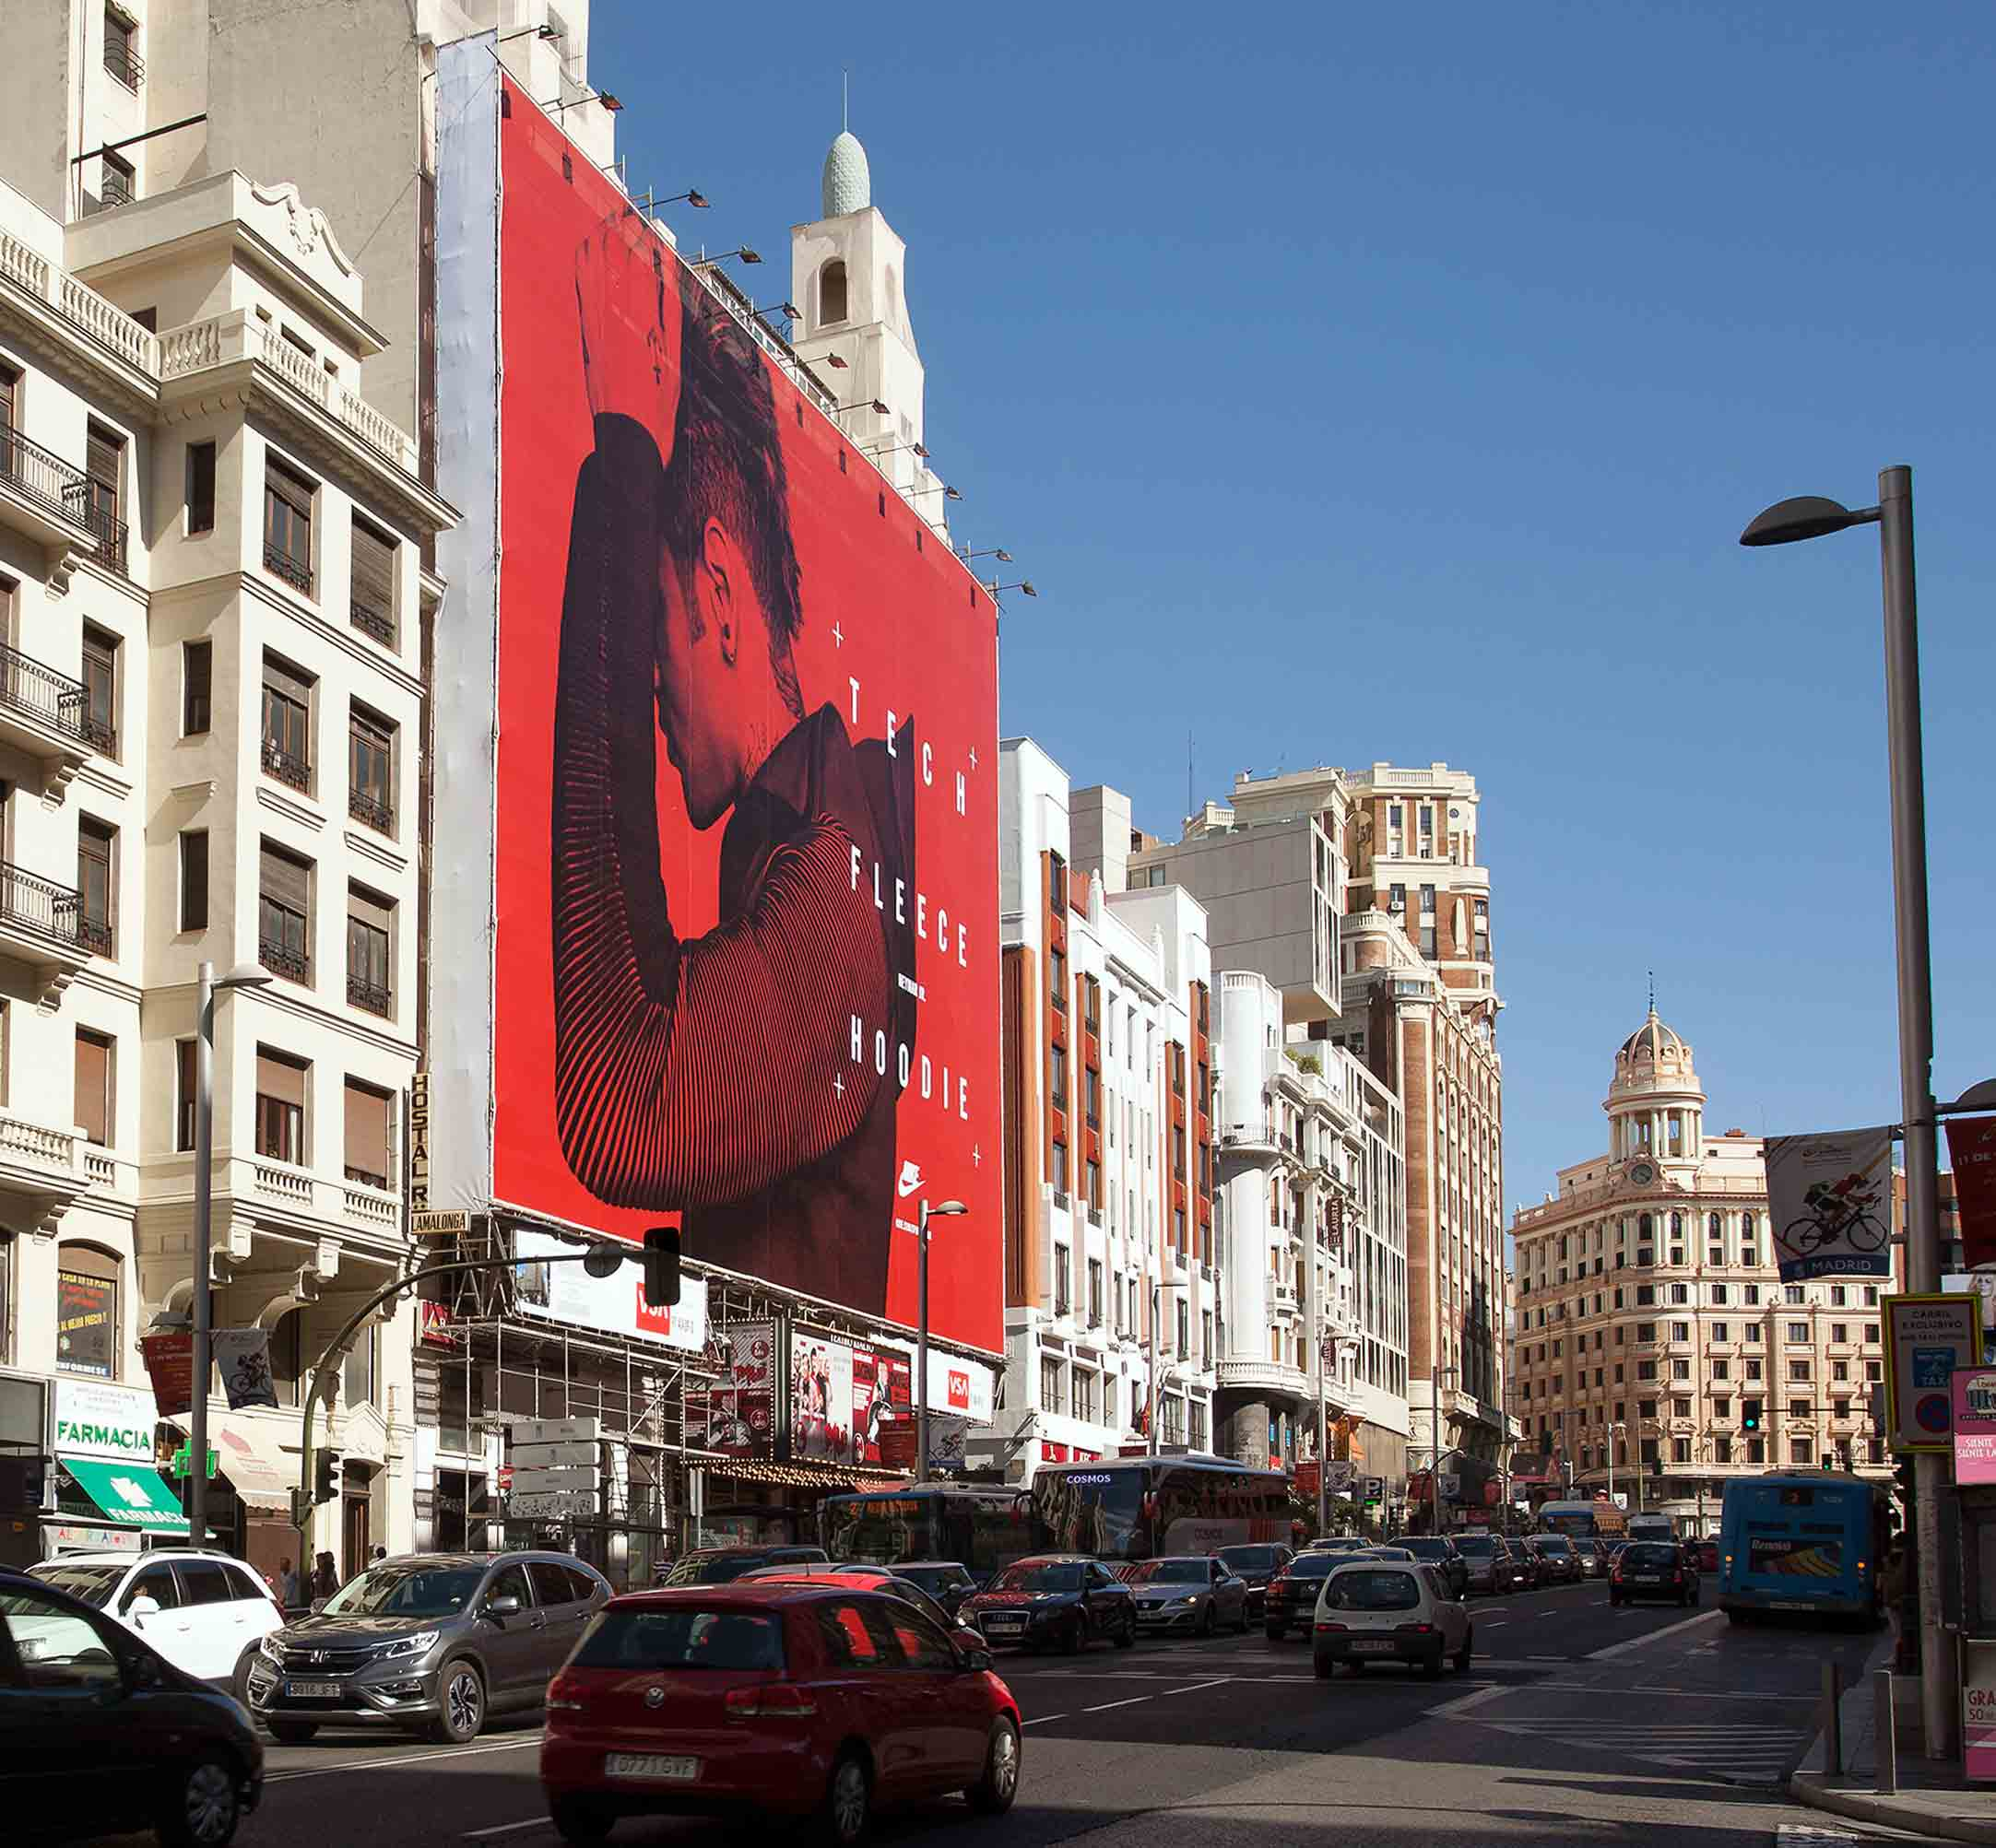 lona-publicitaria-madrid-gran-via-54-nike-tech-fleece-2-vsa-comunicacion